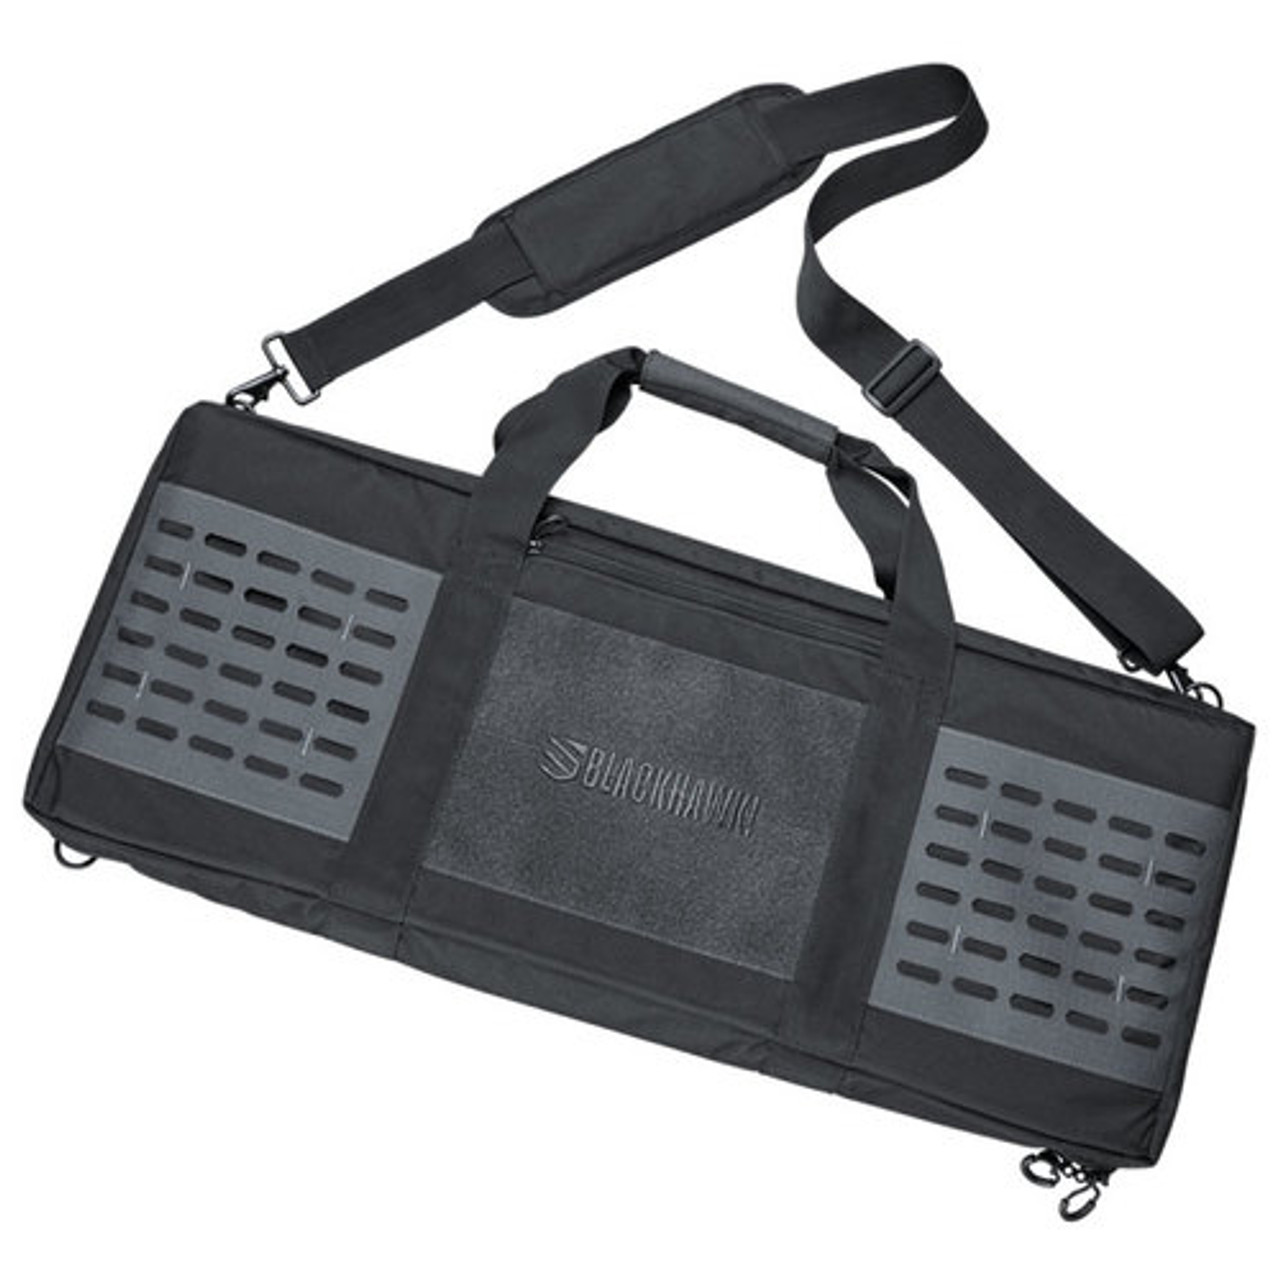 "BLACKHAWK! 61FD30 FOUNDATION 30"" RIFLE CASE, 500D nylon construction, YKK zippers, metal D-rings and padded carrying strap, Integrated sleeve ideal for storing cleaning rods"